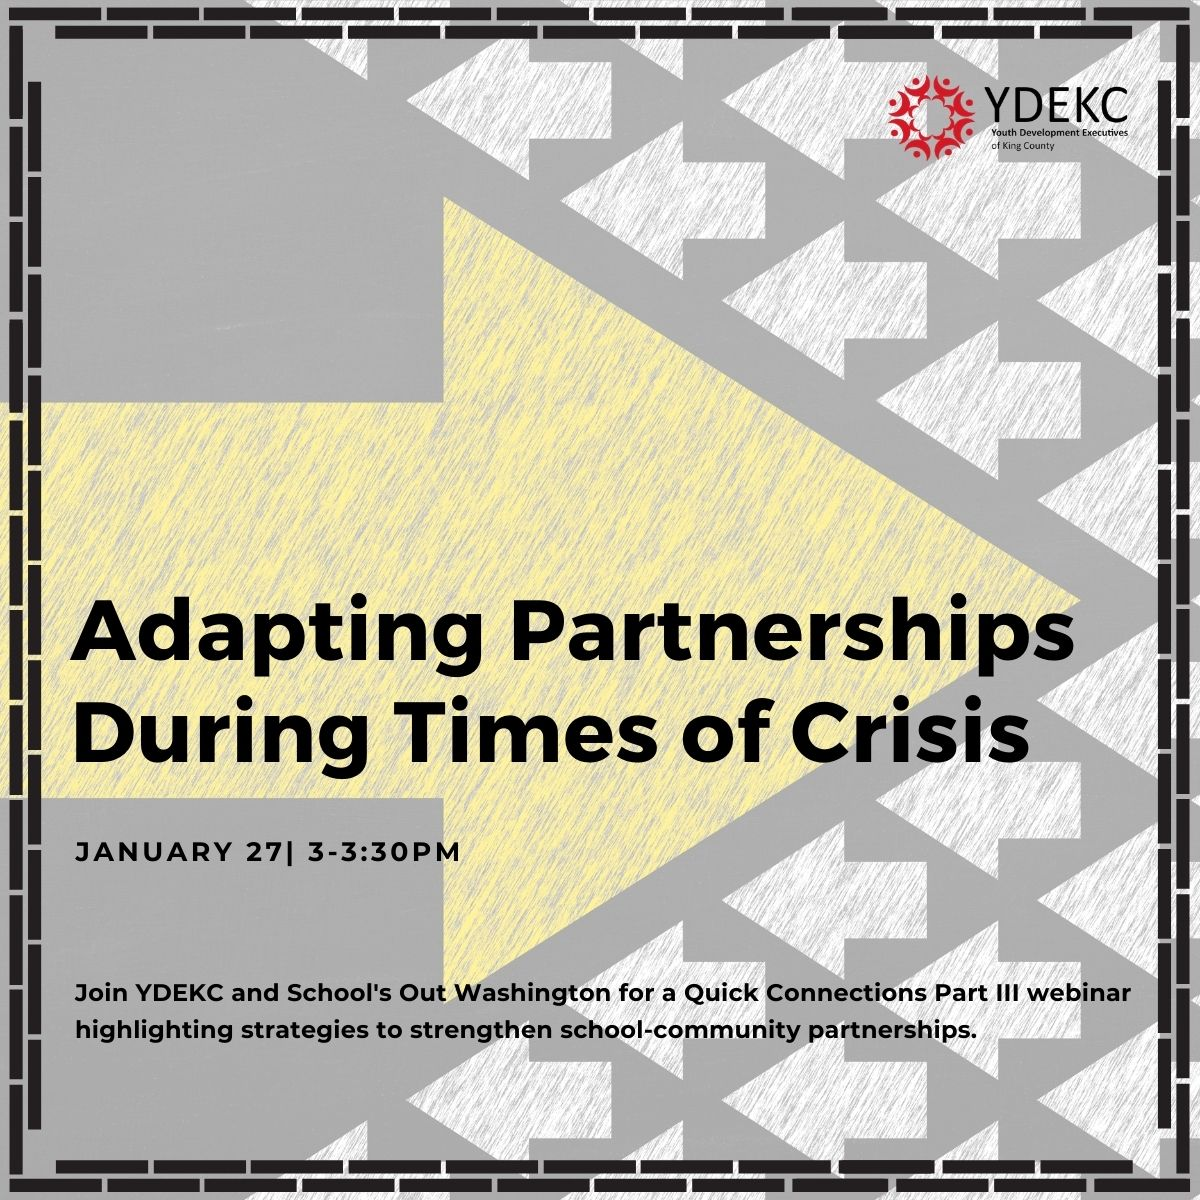 Flyer for January 27 Quick Connections Part 3: Adapting Partnerships During Times of Crisis